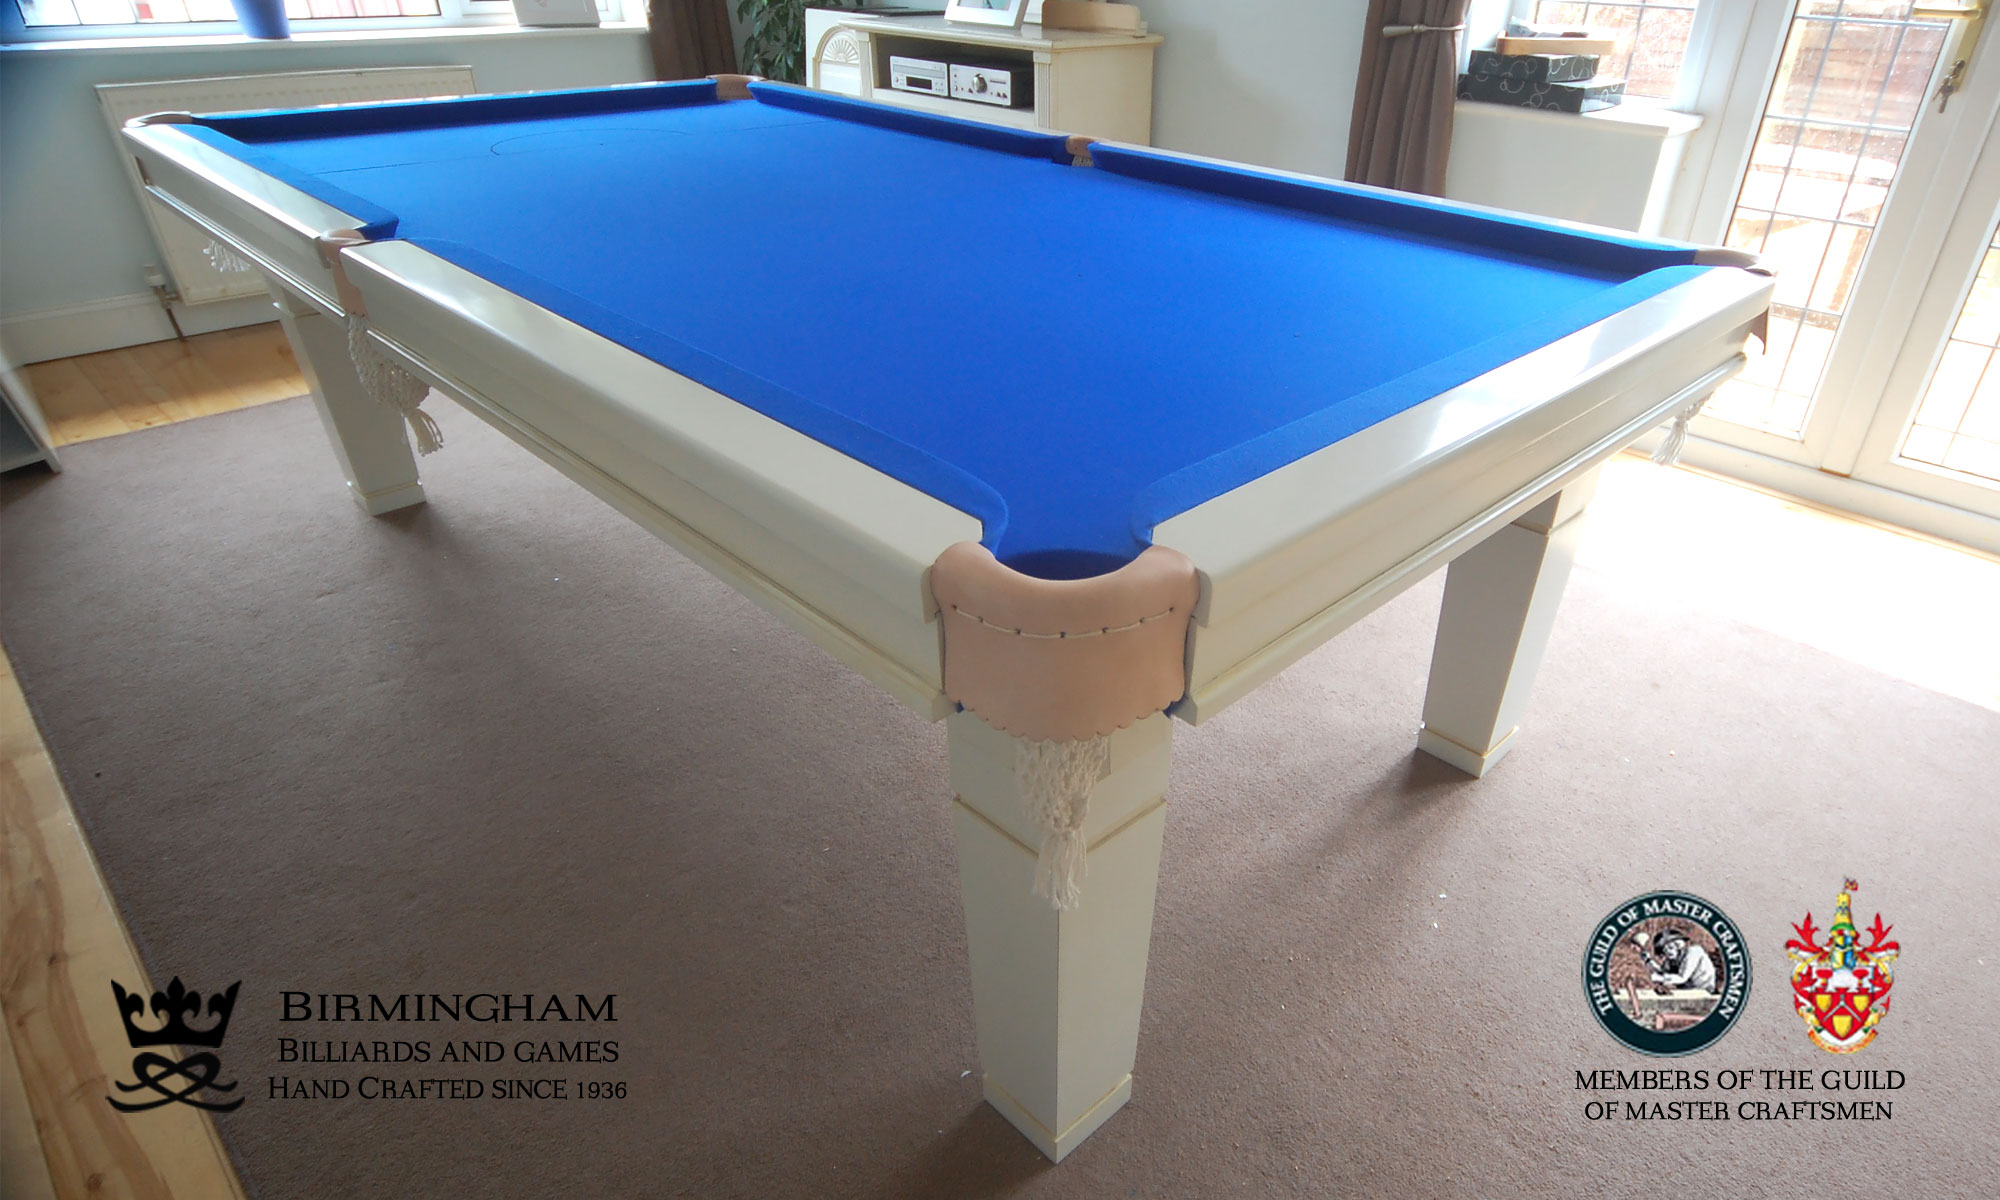 The Contemporary handmade pool table, gloss white finish, royal blue baize